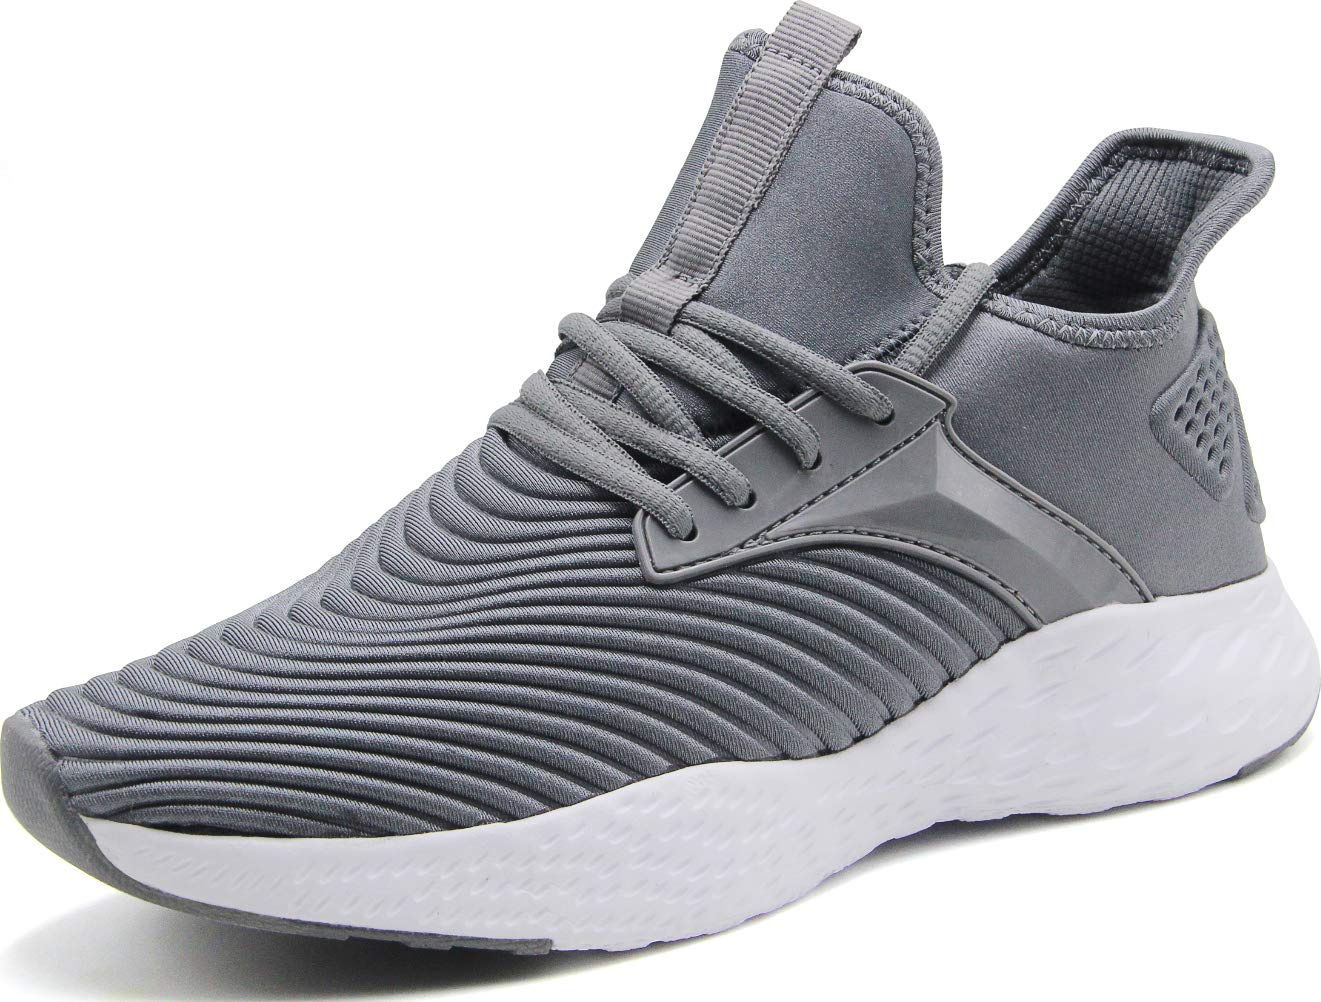 Weweya Running Shoes Men Athletic Gym Casual Walking Shoes Tennis & Racquet  Sports Shoes Fitness & Cross-Training Shoes Cycling Road Running Sneakers